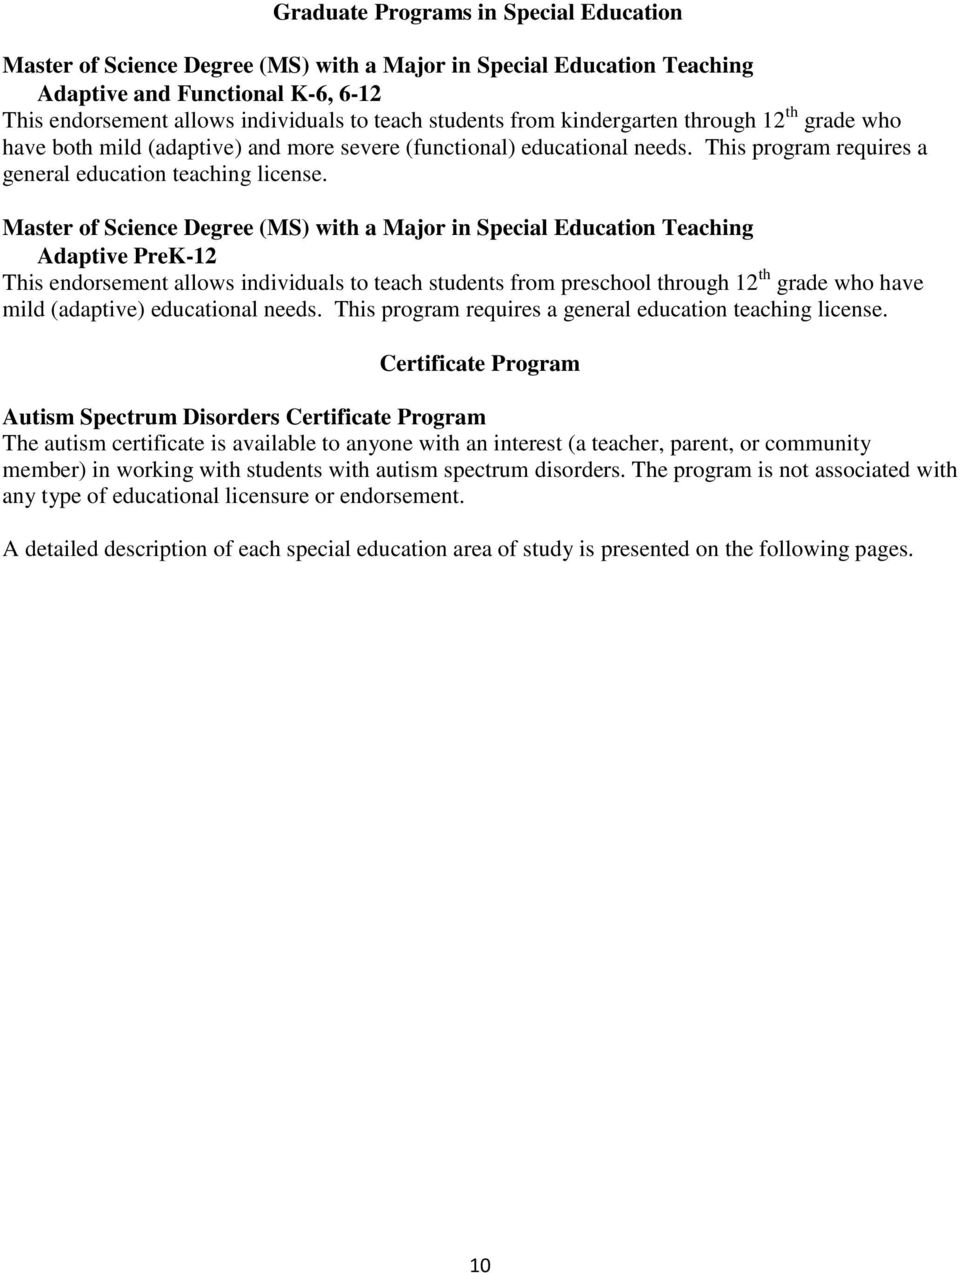 Master of Science Degree (MS) with a Major in Special Education Teaching Adaptive PreK-12 This endorsement allows individuals to teach students from preschool through 12 th grade who have mild